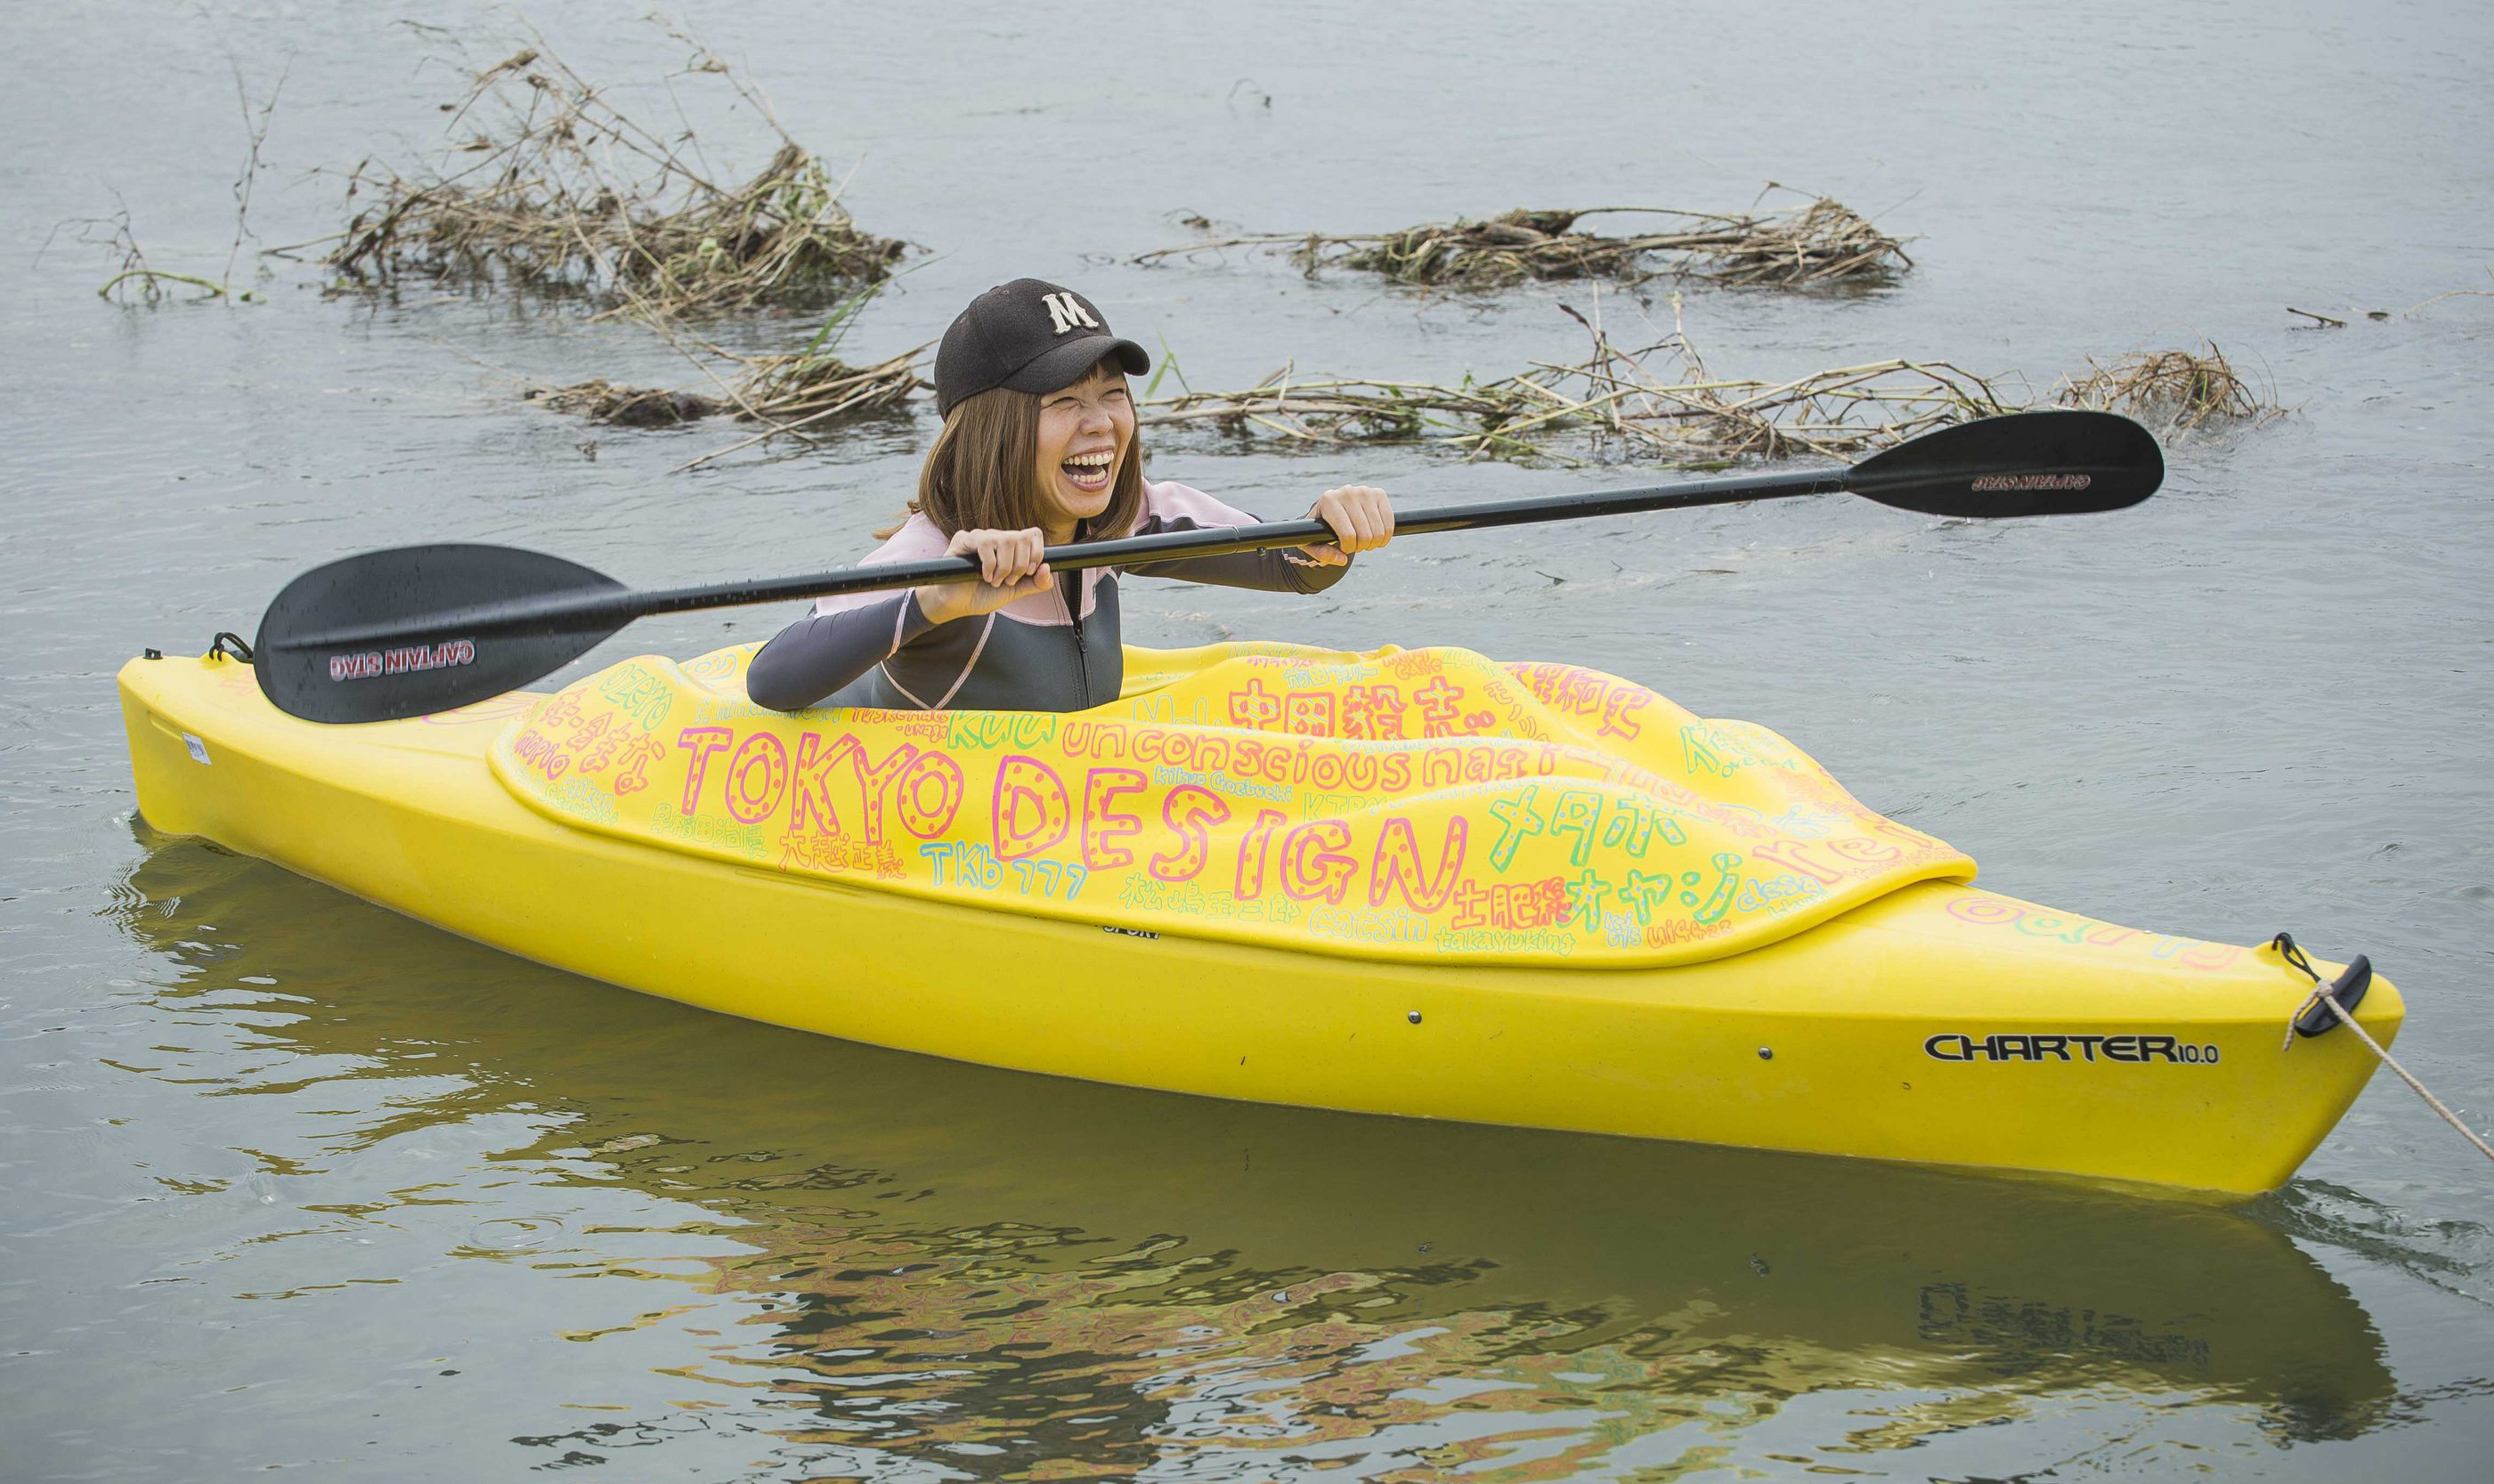 Japanese artist Megumi Igarashi, known as Rokudenashi-ko, paddles in her kayak modeled on her vagina in Tama River in Tokyo Oct. 19, 2013. Igarashi, 42, says she was challenging a culture of 'discrimination' against discussion of the vagina in Japanese society. | REUTERS